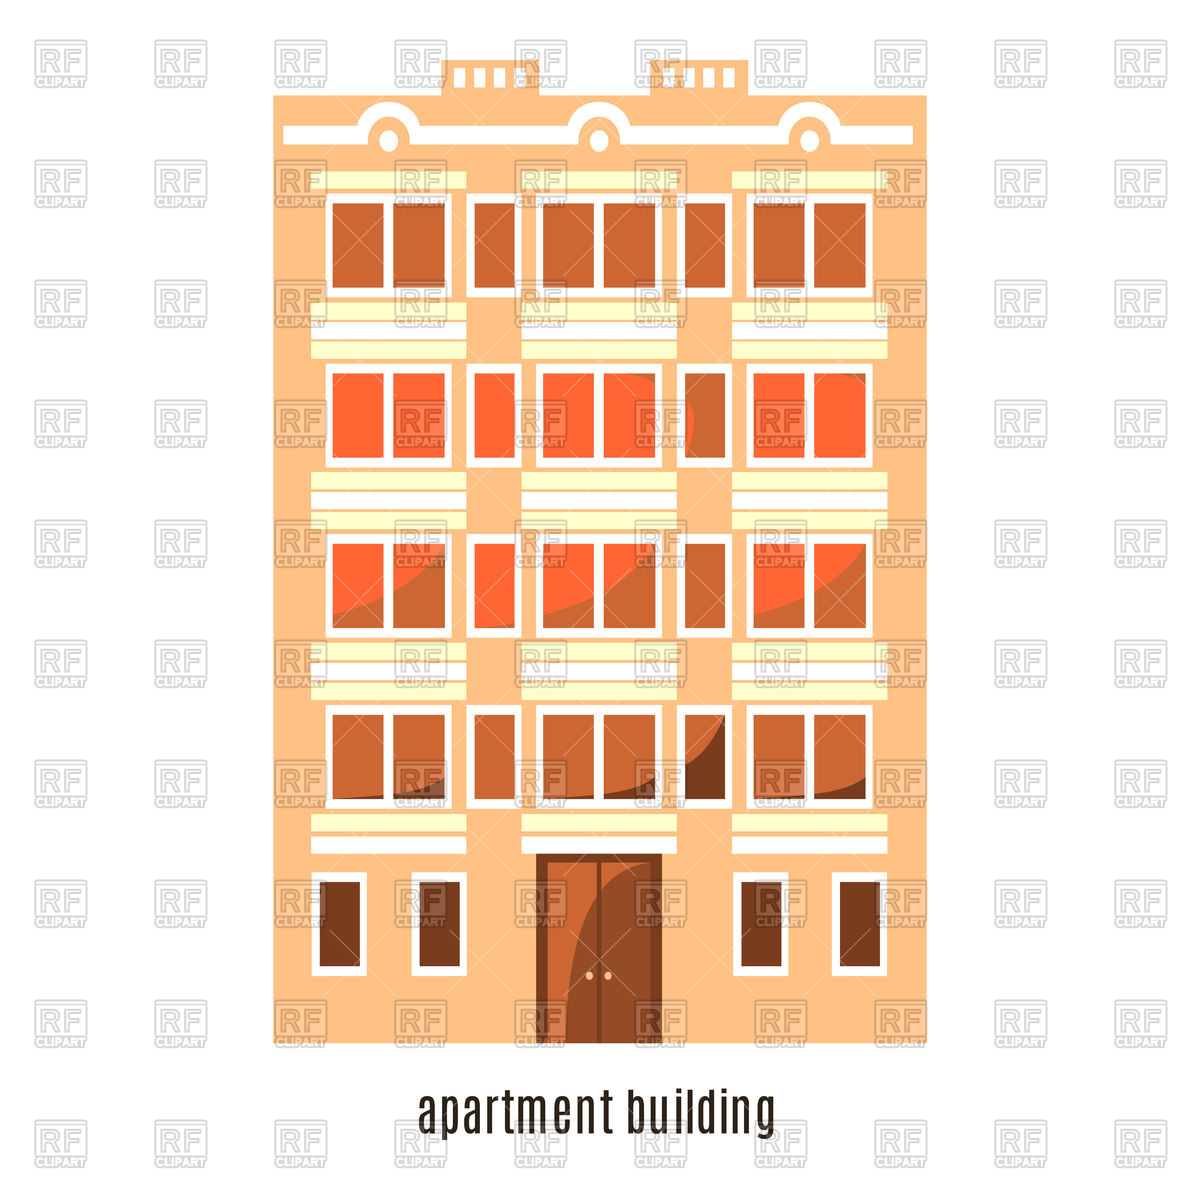 Flat house icon, multistorey cartoon building Stock Vector Image.